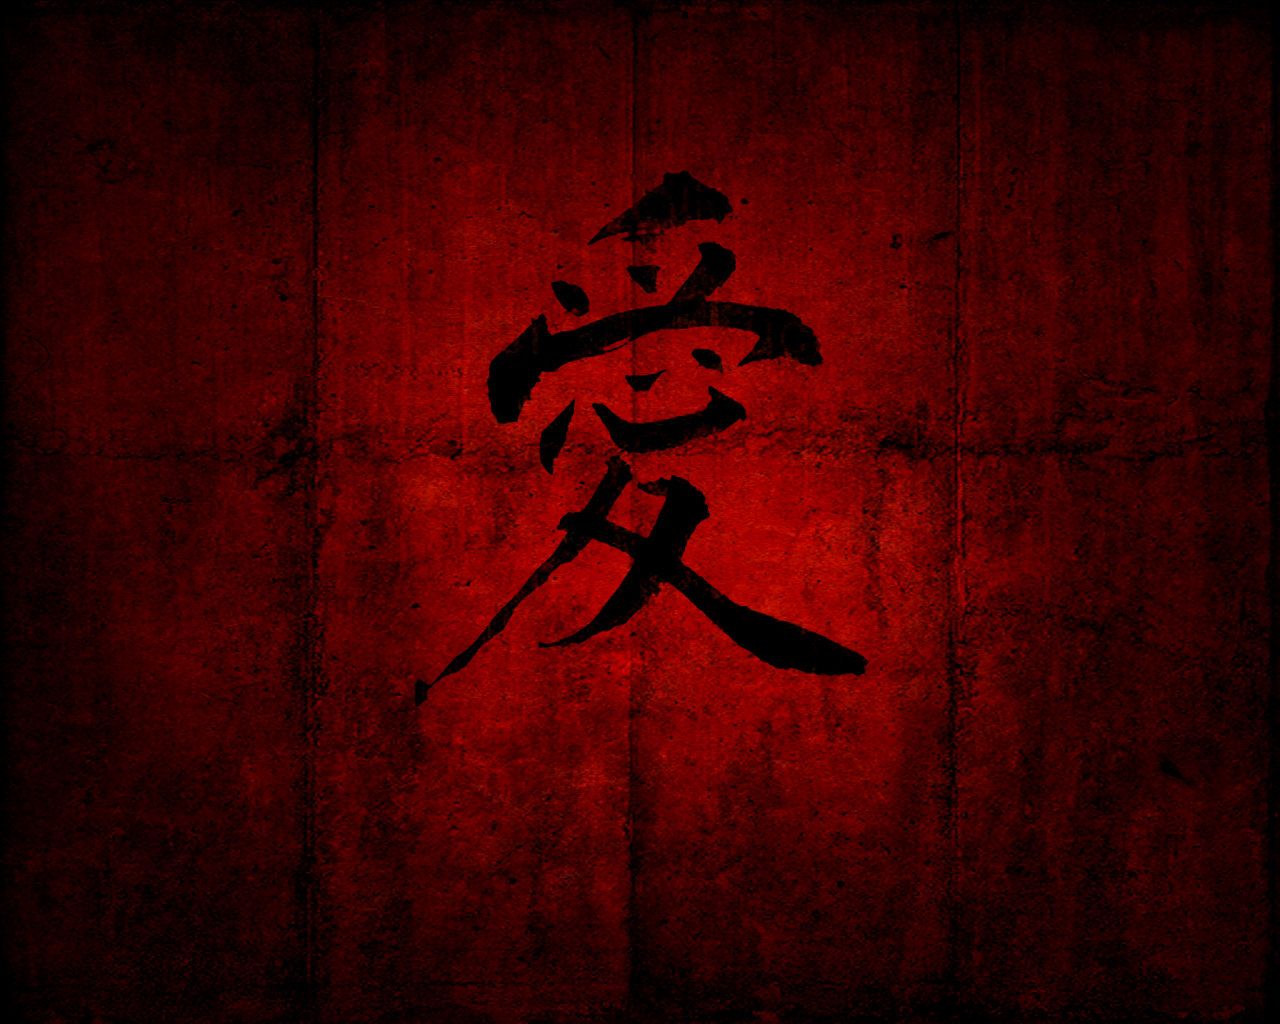 Love Symbol Wallpaper In Hd : Kanji Wallpaper - WallpaperSafari